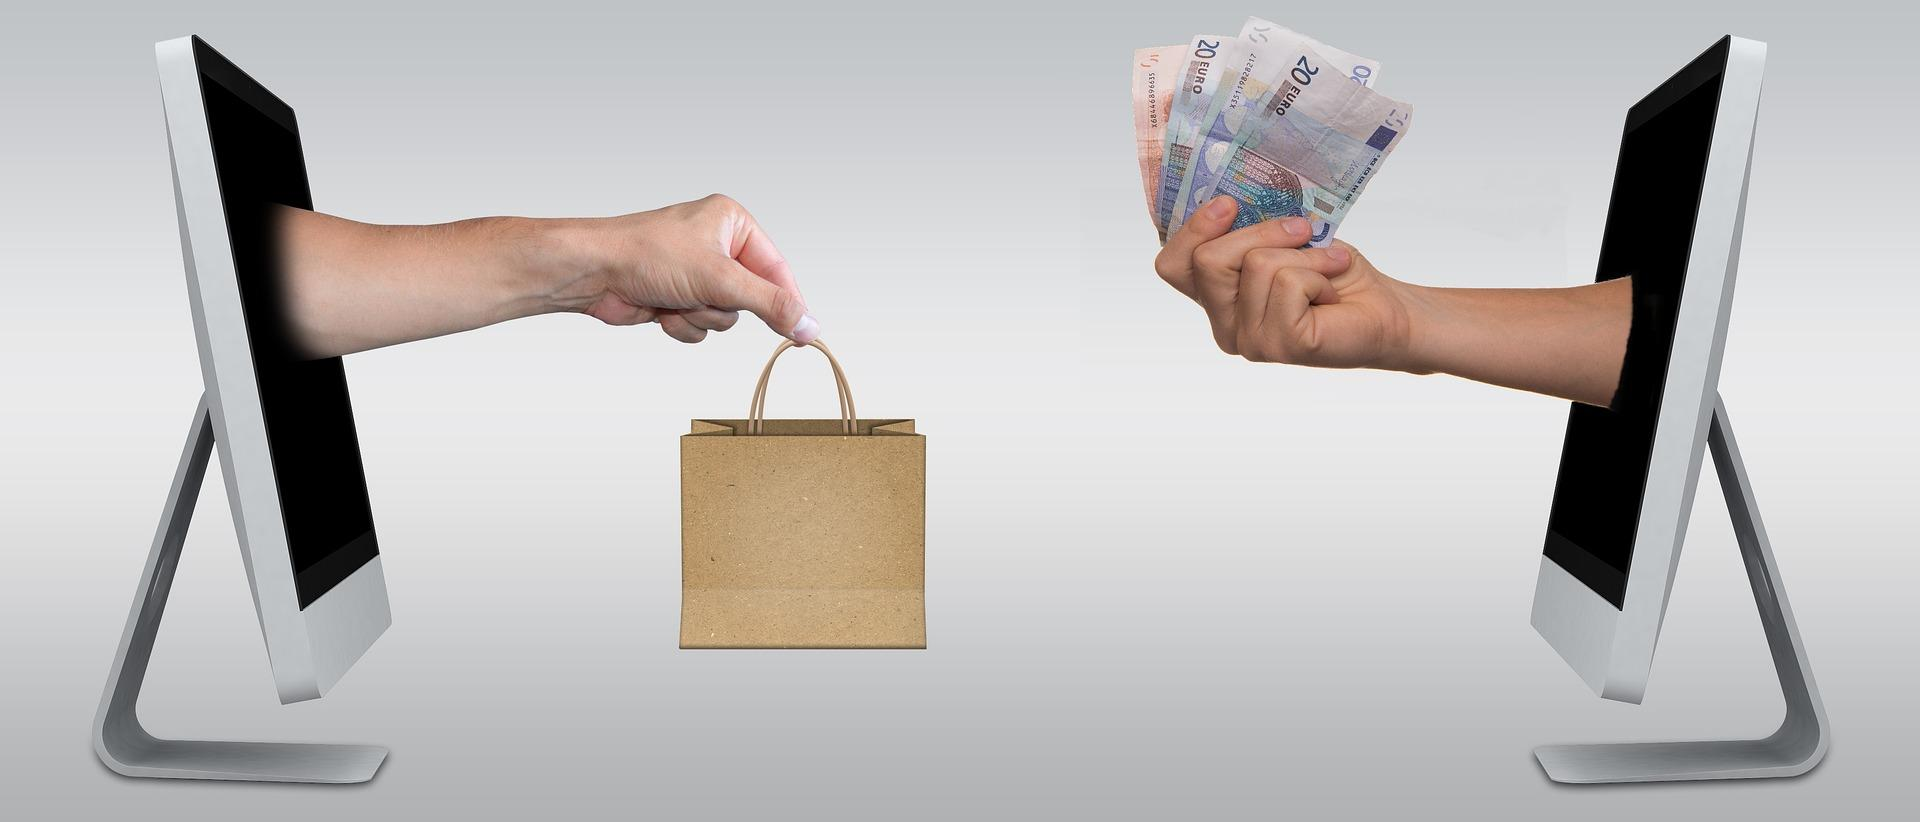 ecommerce transactions for dropshippers